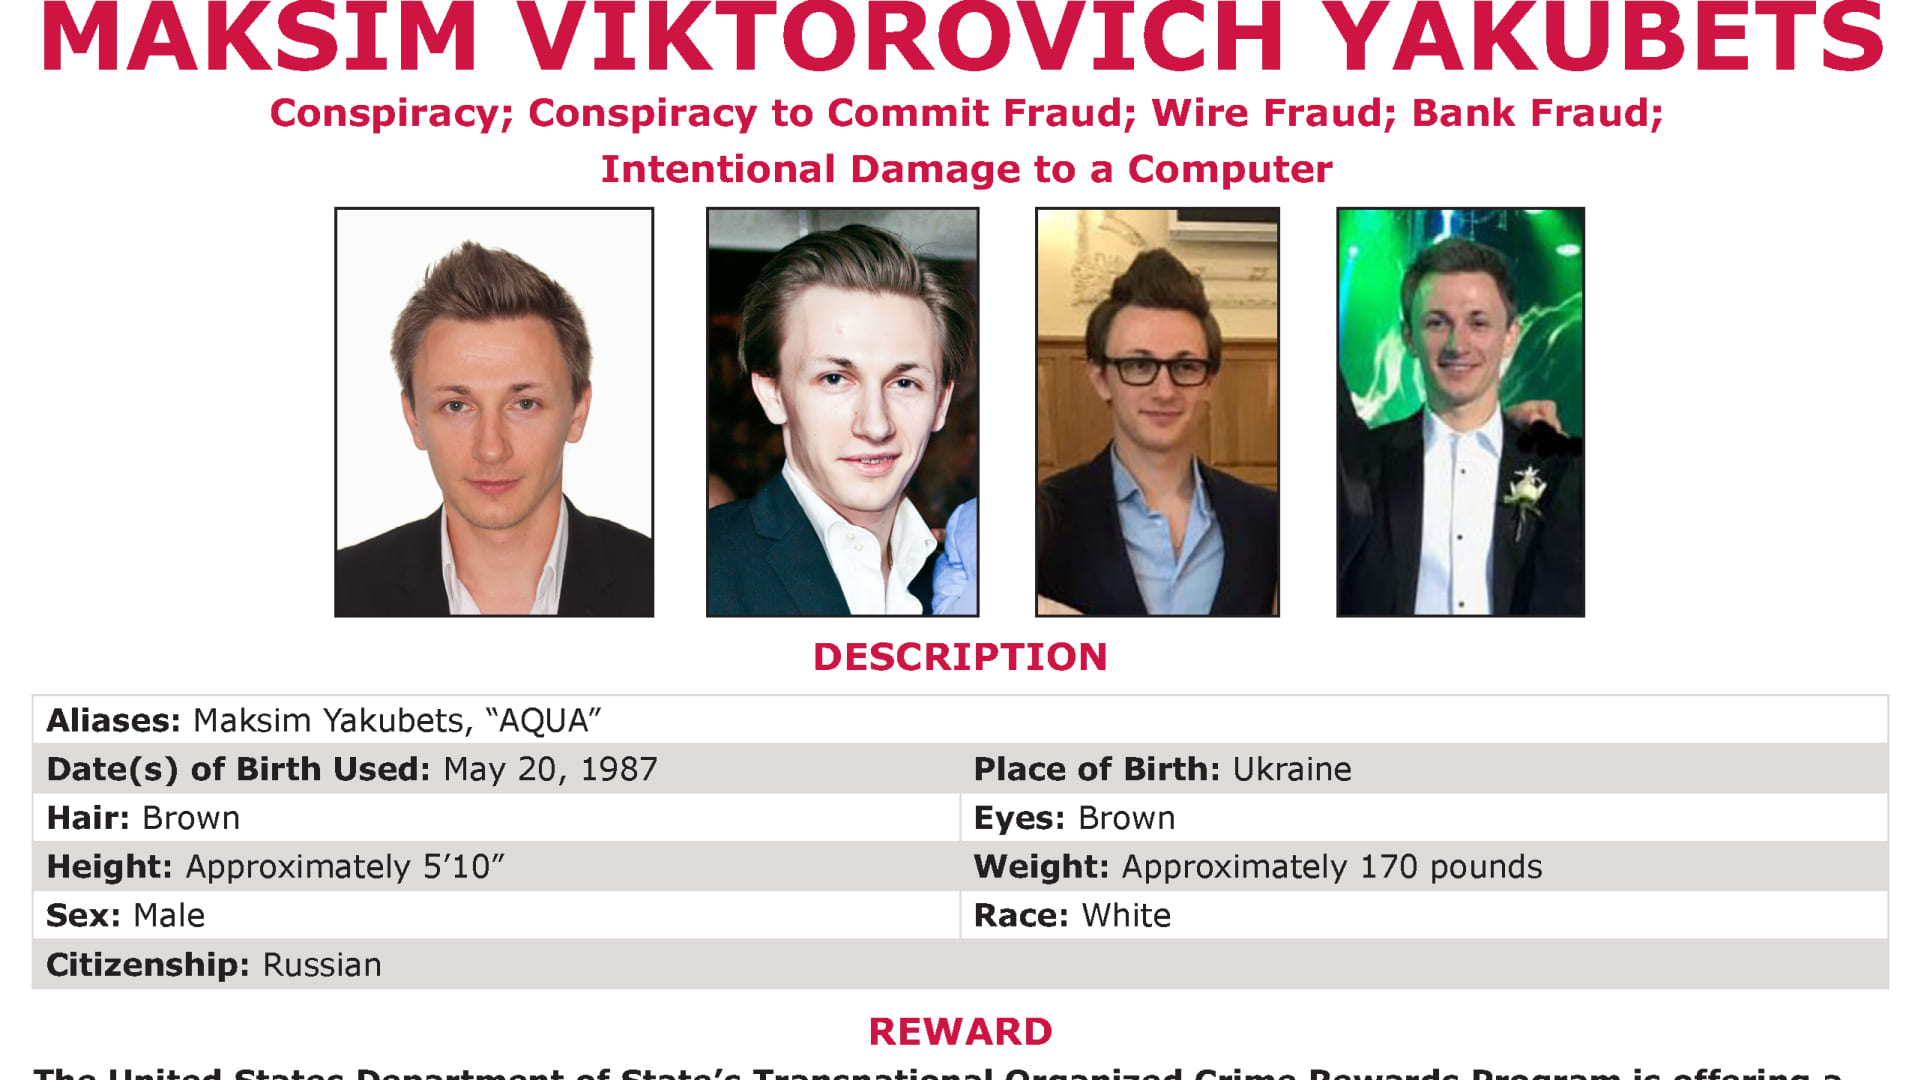 D.O.J Wanted Poster for Maksim Viktorovitch Yakubets